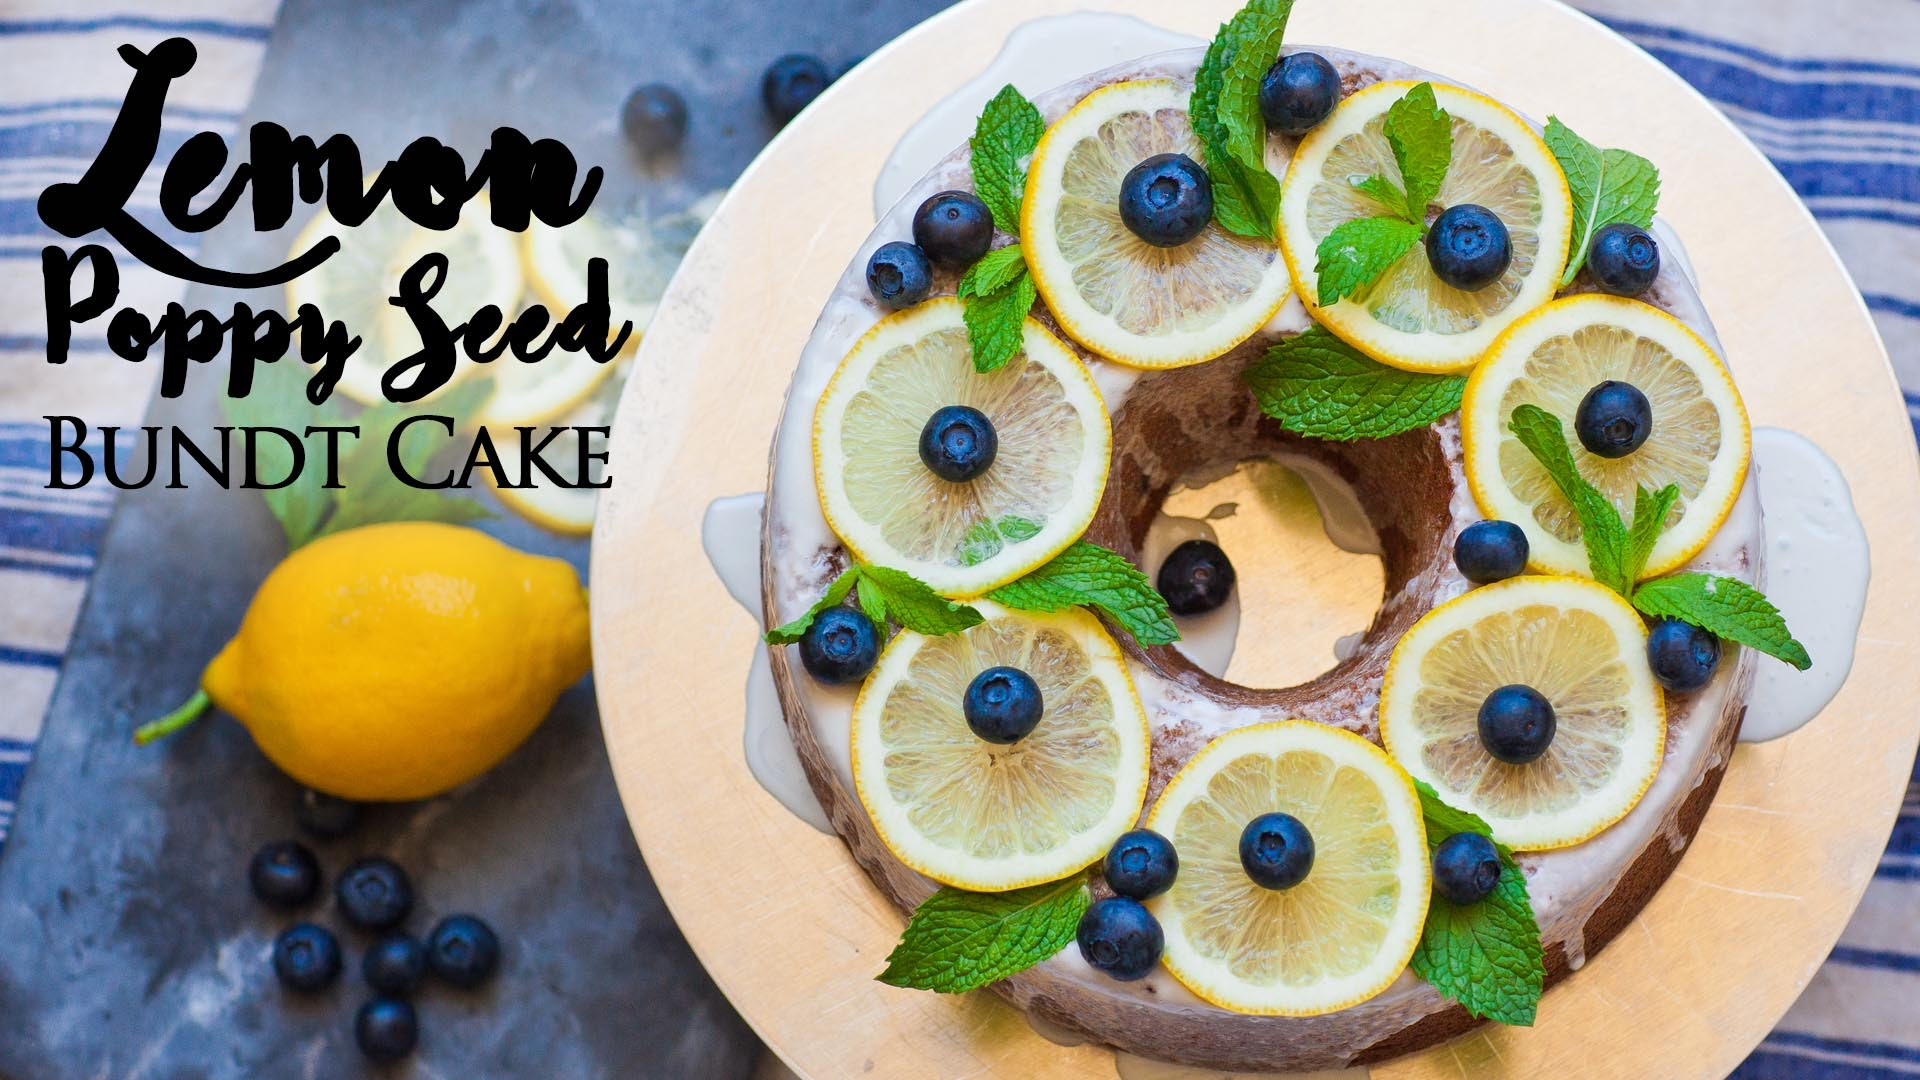 This Lemon Poppy Seed Bundt Cake Is Simplicity At Its Best